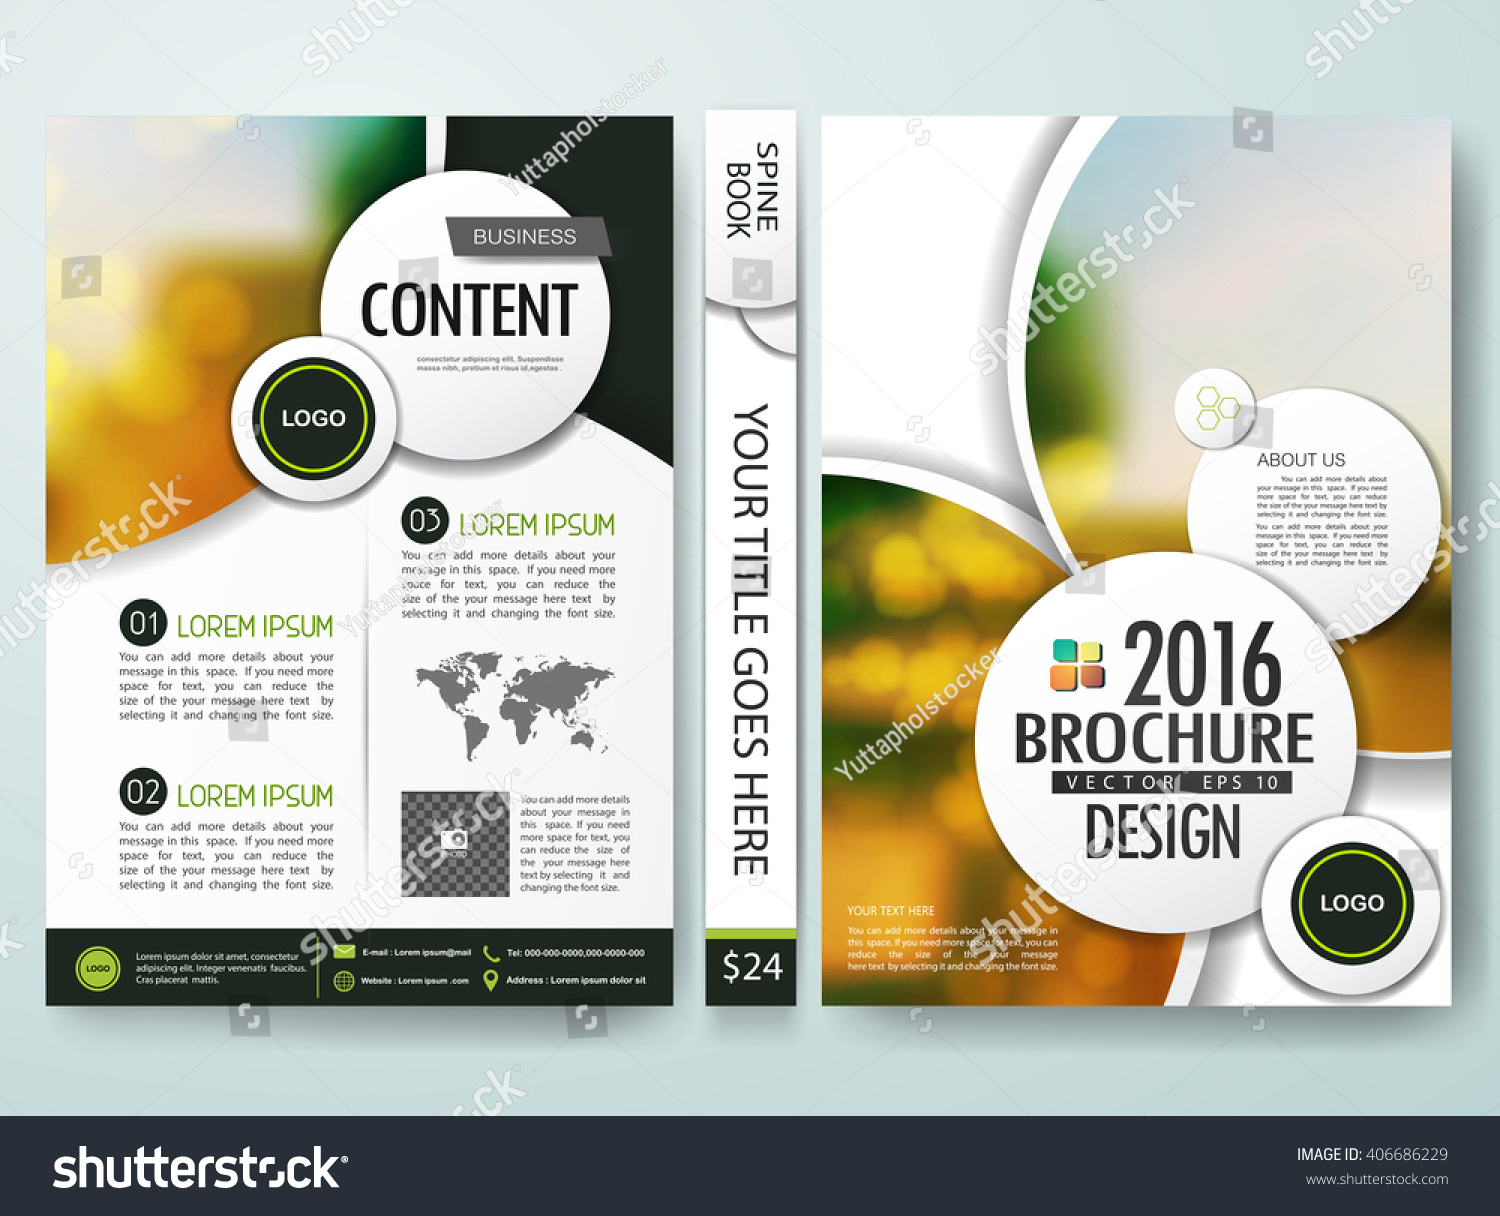 brochure design template vector flyers report stock vector brochure design template vector flyers report business magazine cover book portfolio presentation and abstract